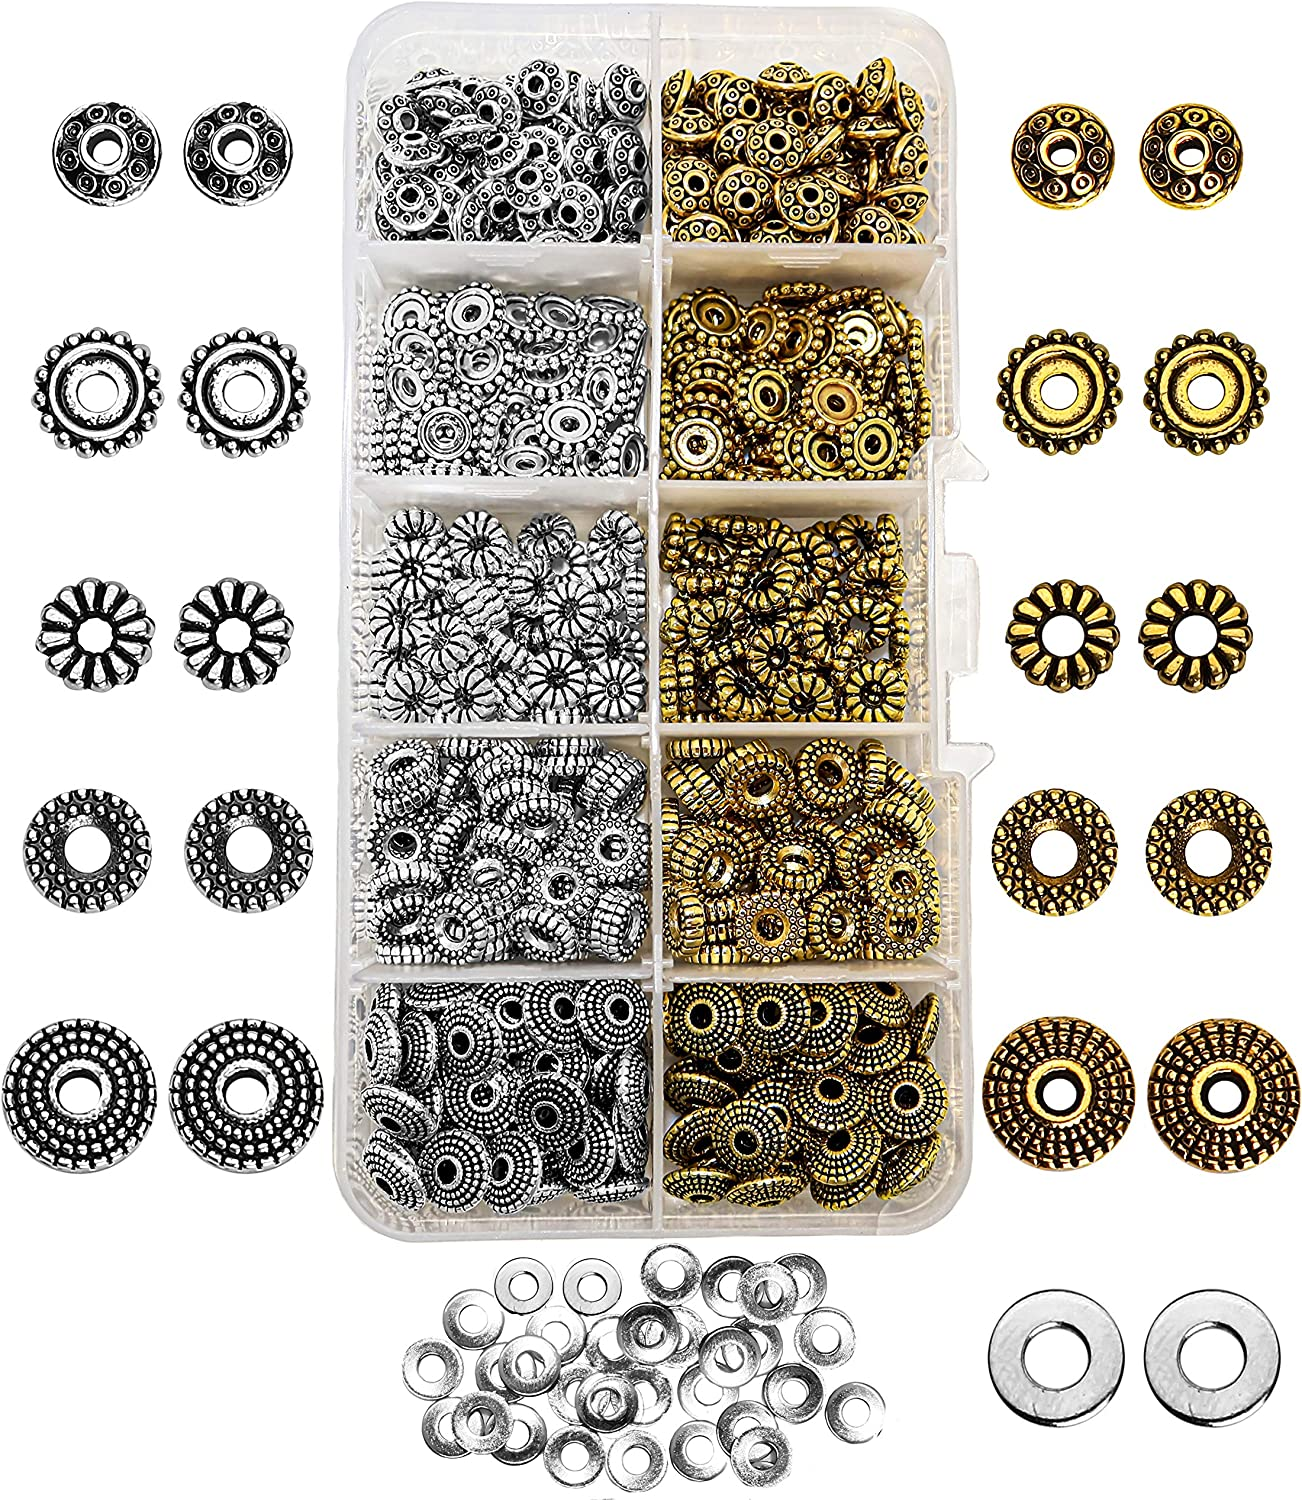 Jewellery Making Findings Kit Gift Gold Silver Antique  Rrp £30 100's Pieces